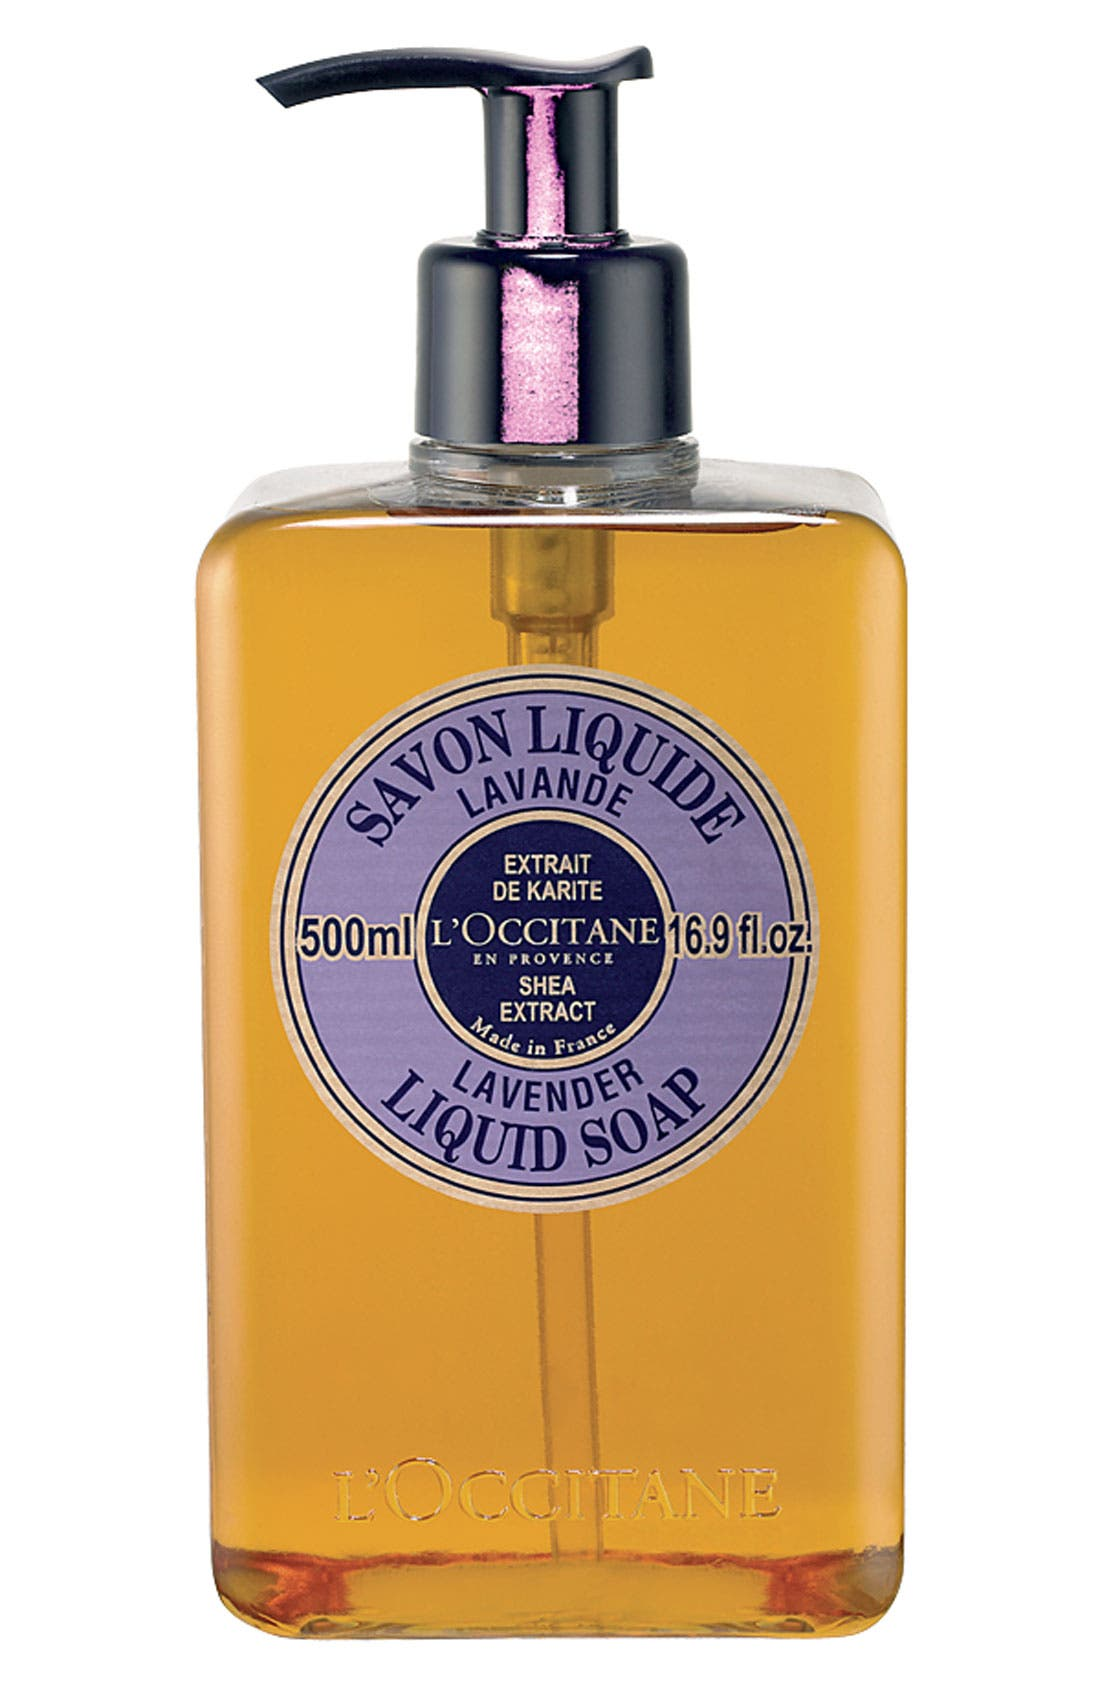 L'Occitane 'Lavender' Shea Liquid Soap